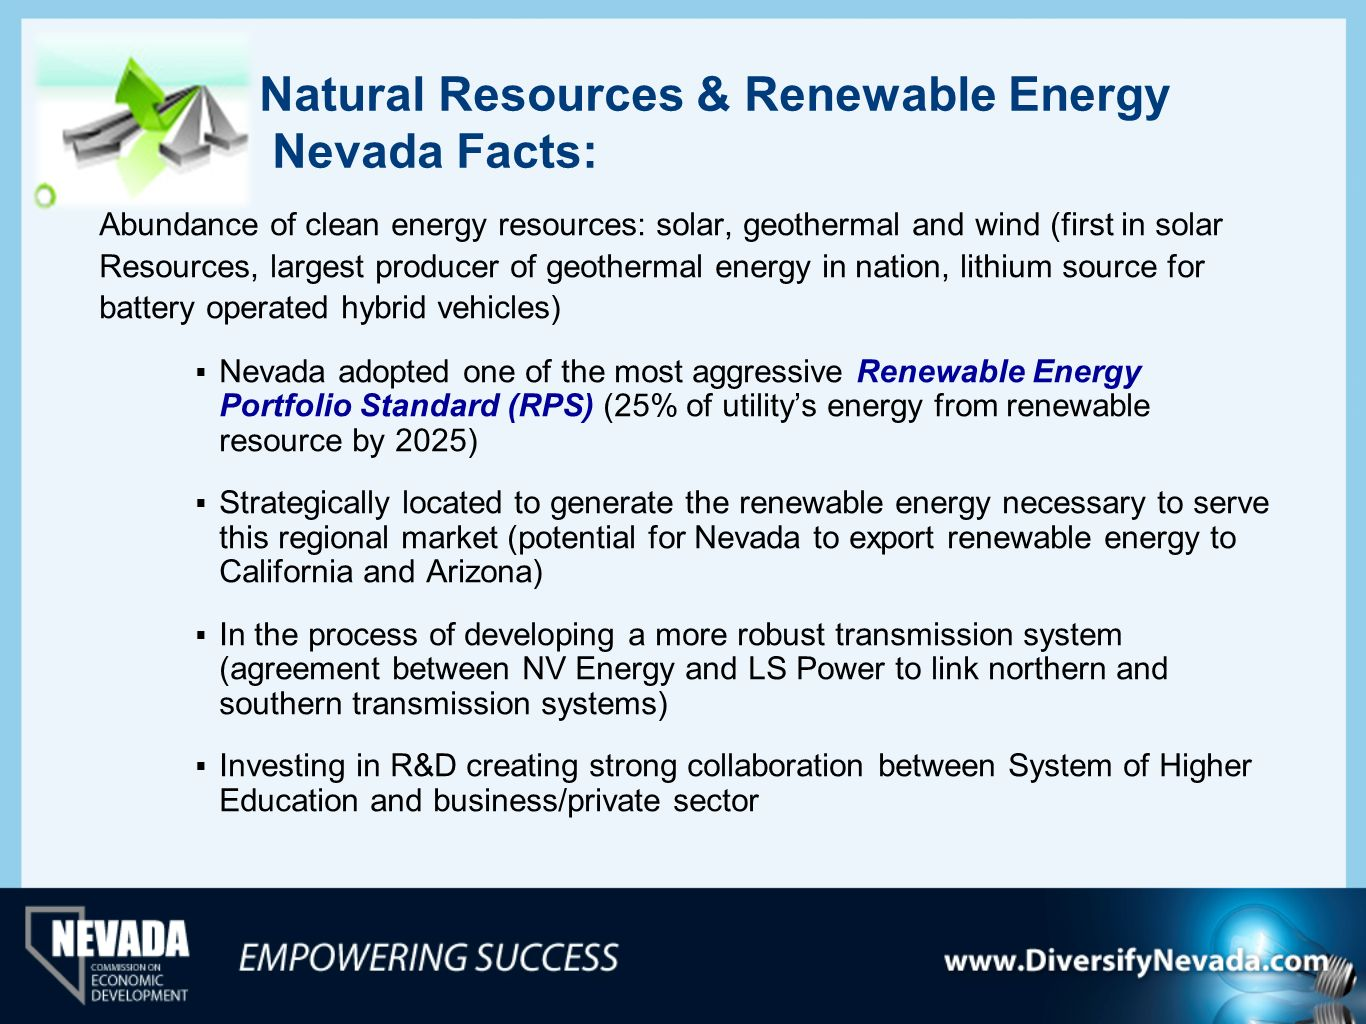 Natural Resources & Renewable Energy Nevada Facts: